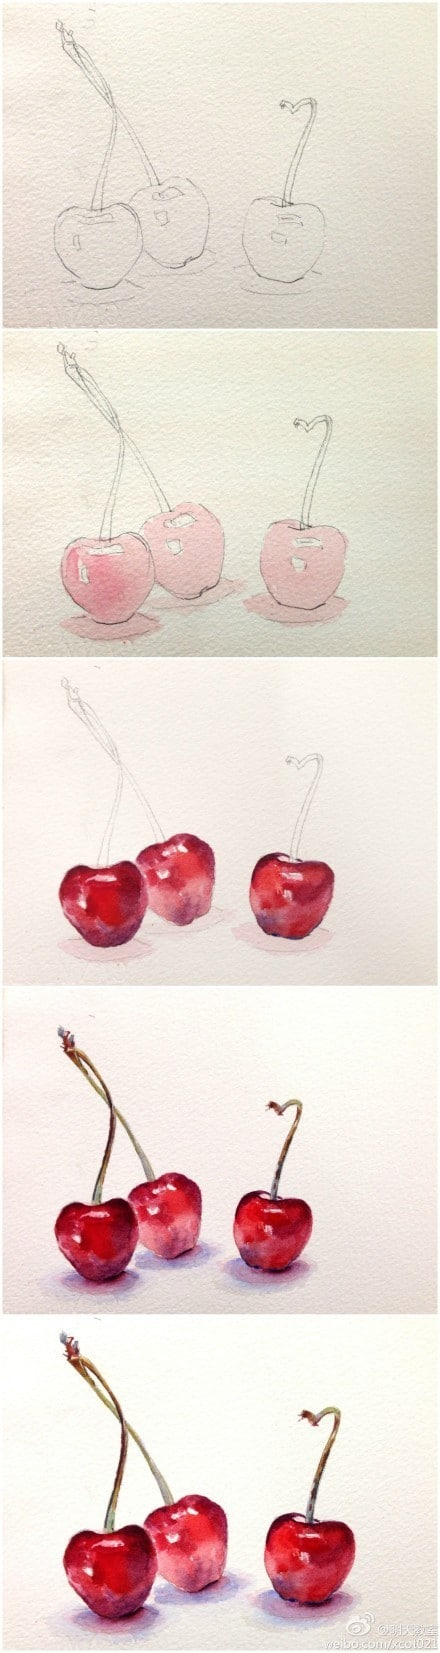 watercolor painting ideas cherry